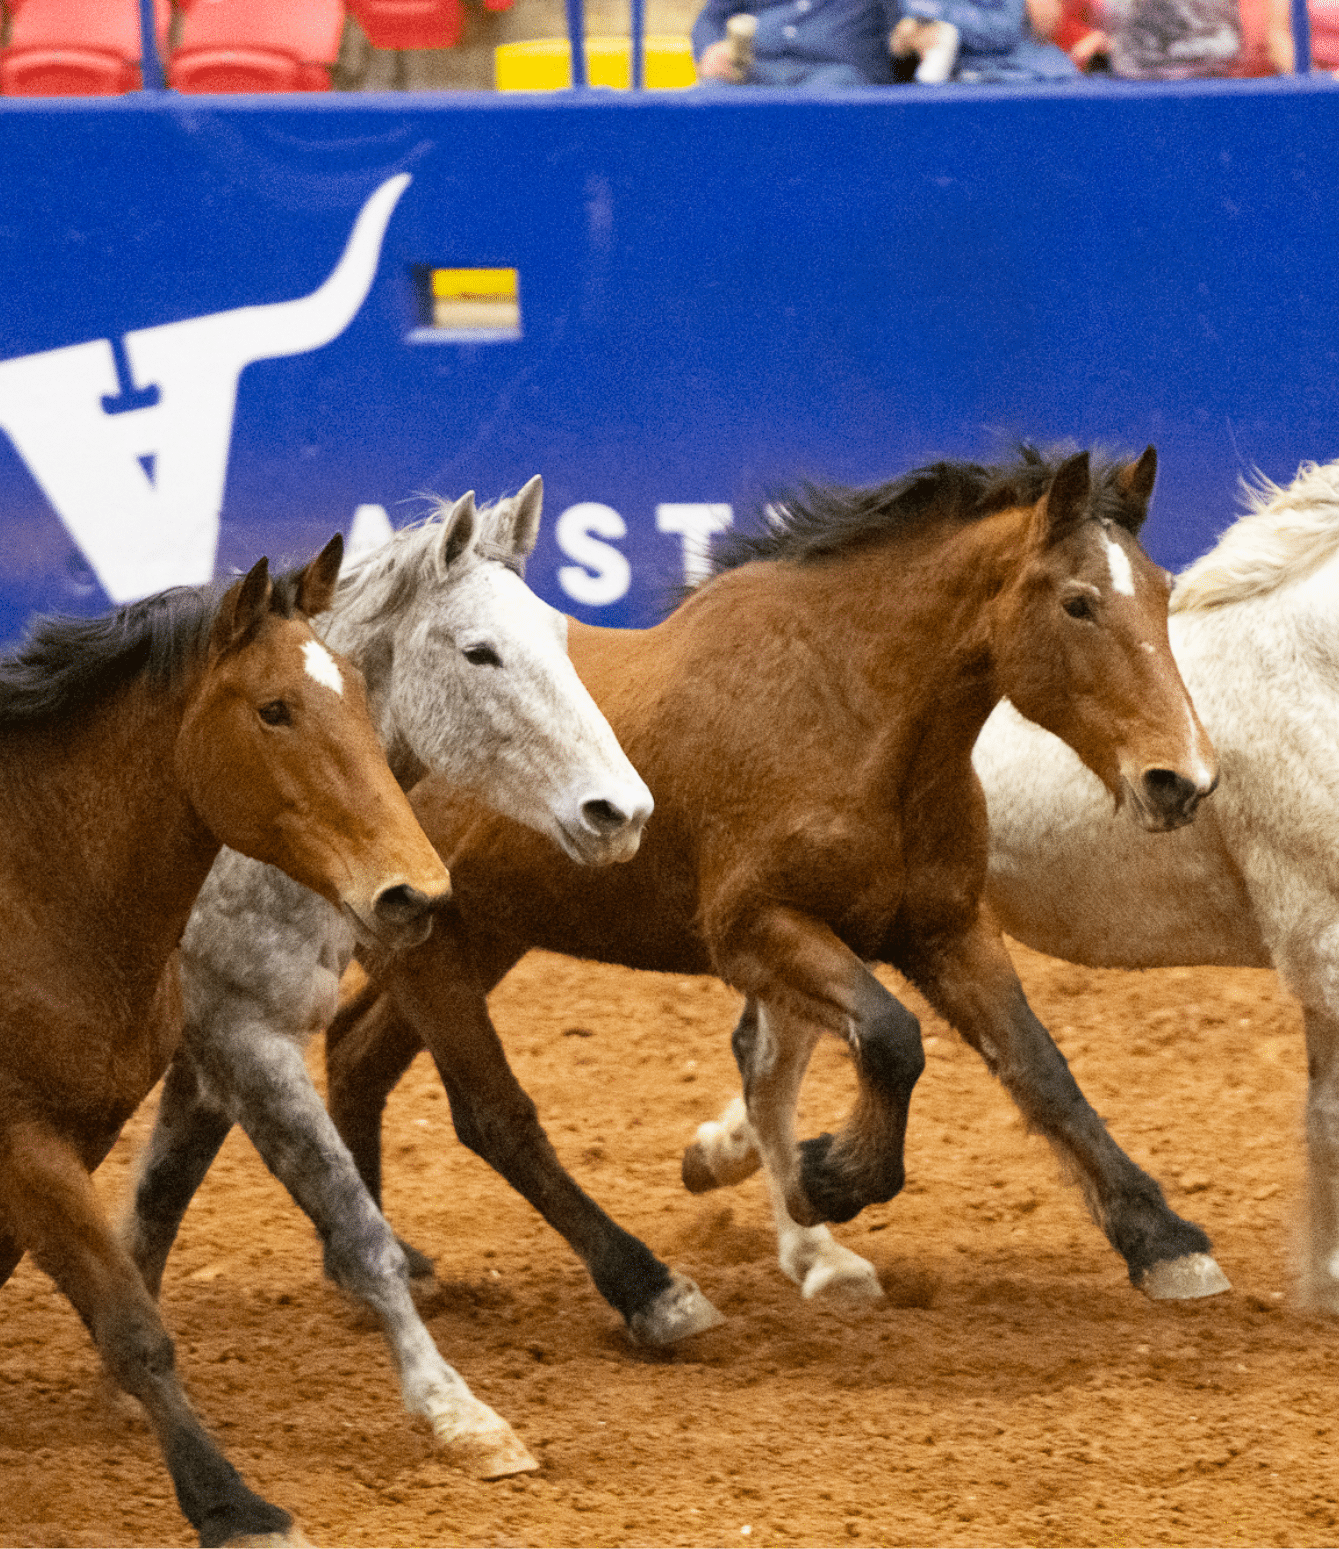 Rodeo horses running through the arena